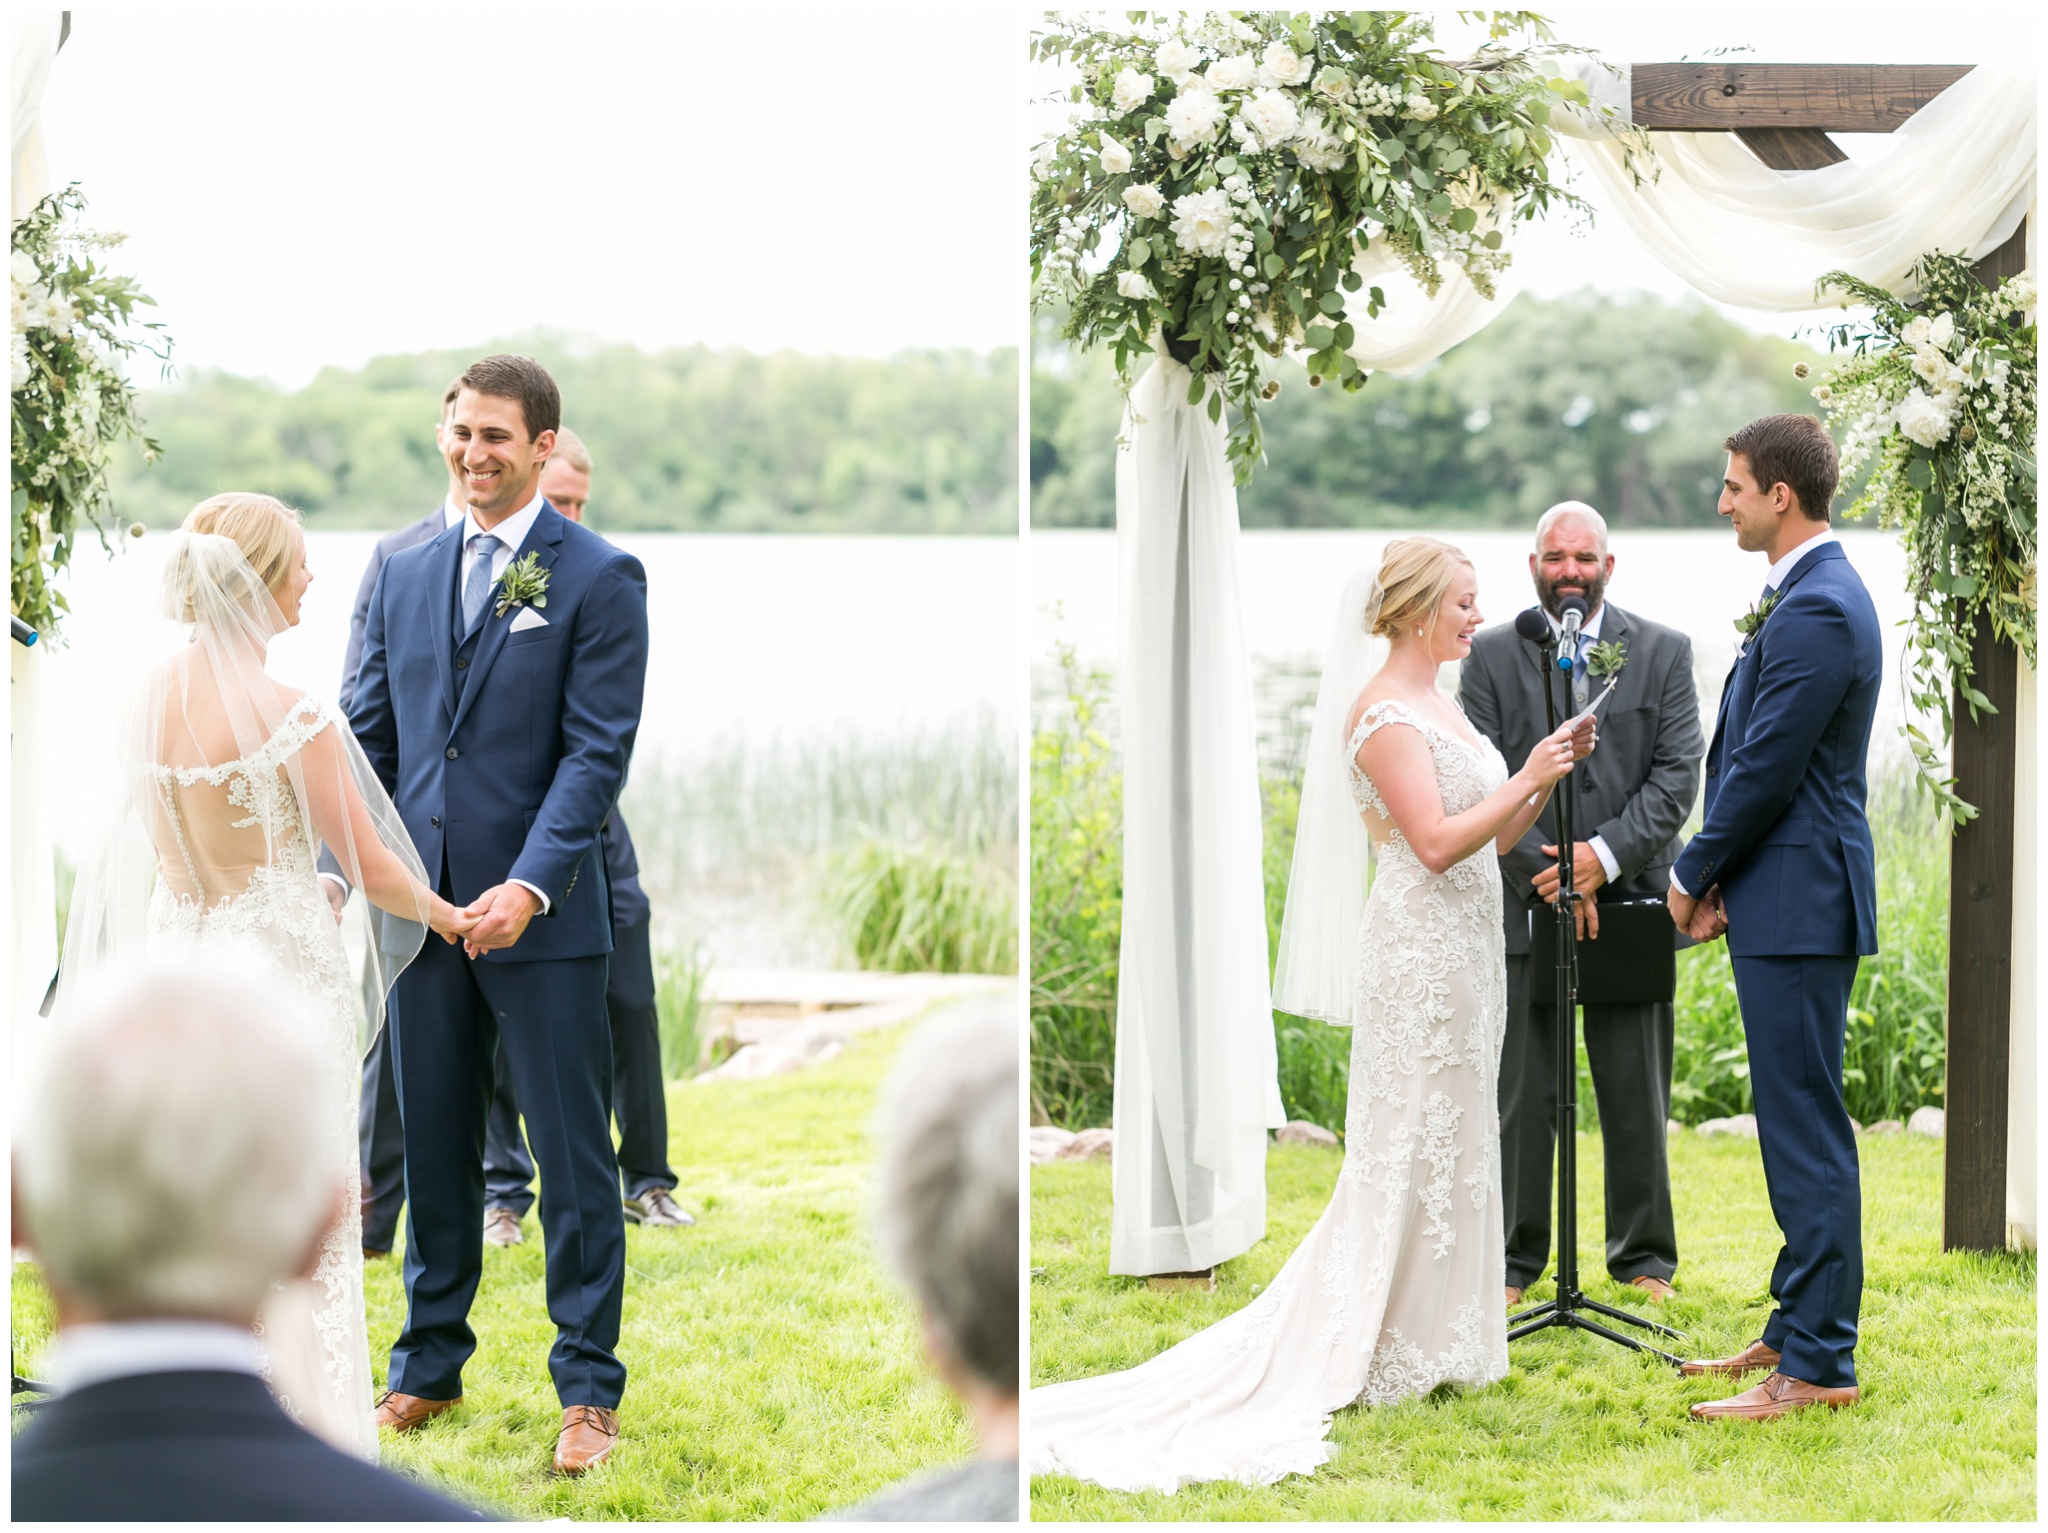 private_estate_wedding_stoughton_wisconsin_wedding_caynay_photo_3865.jpg